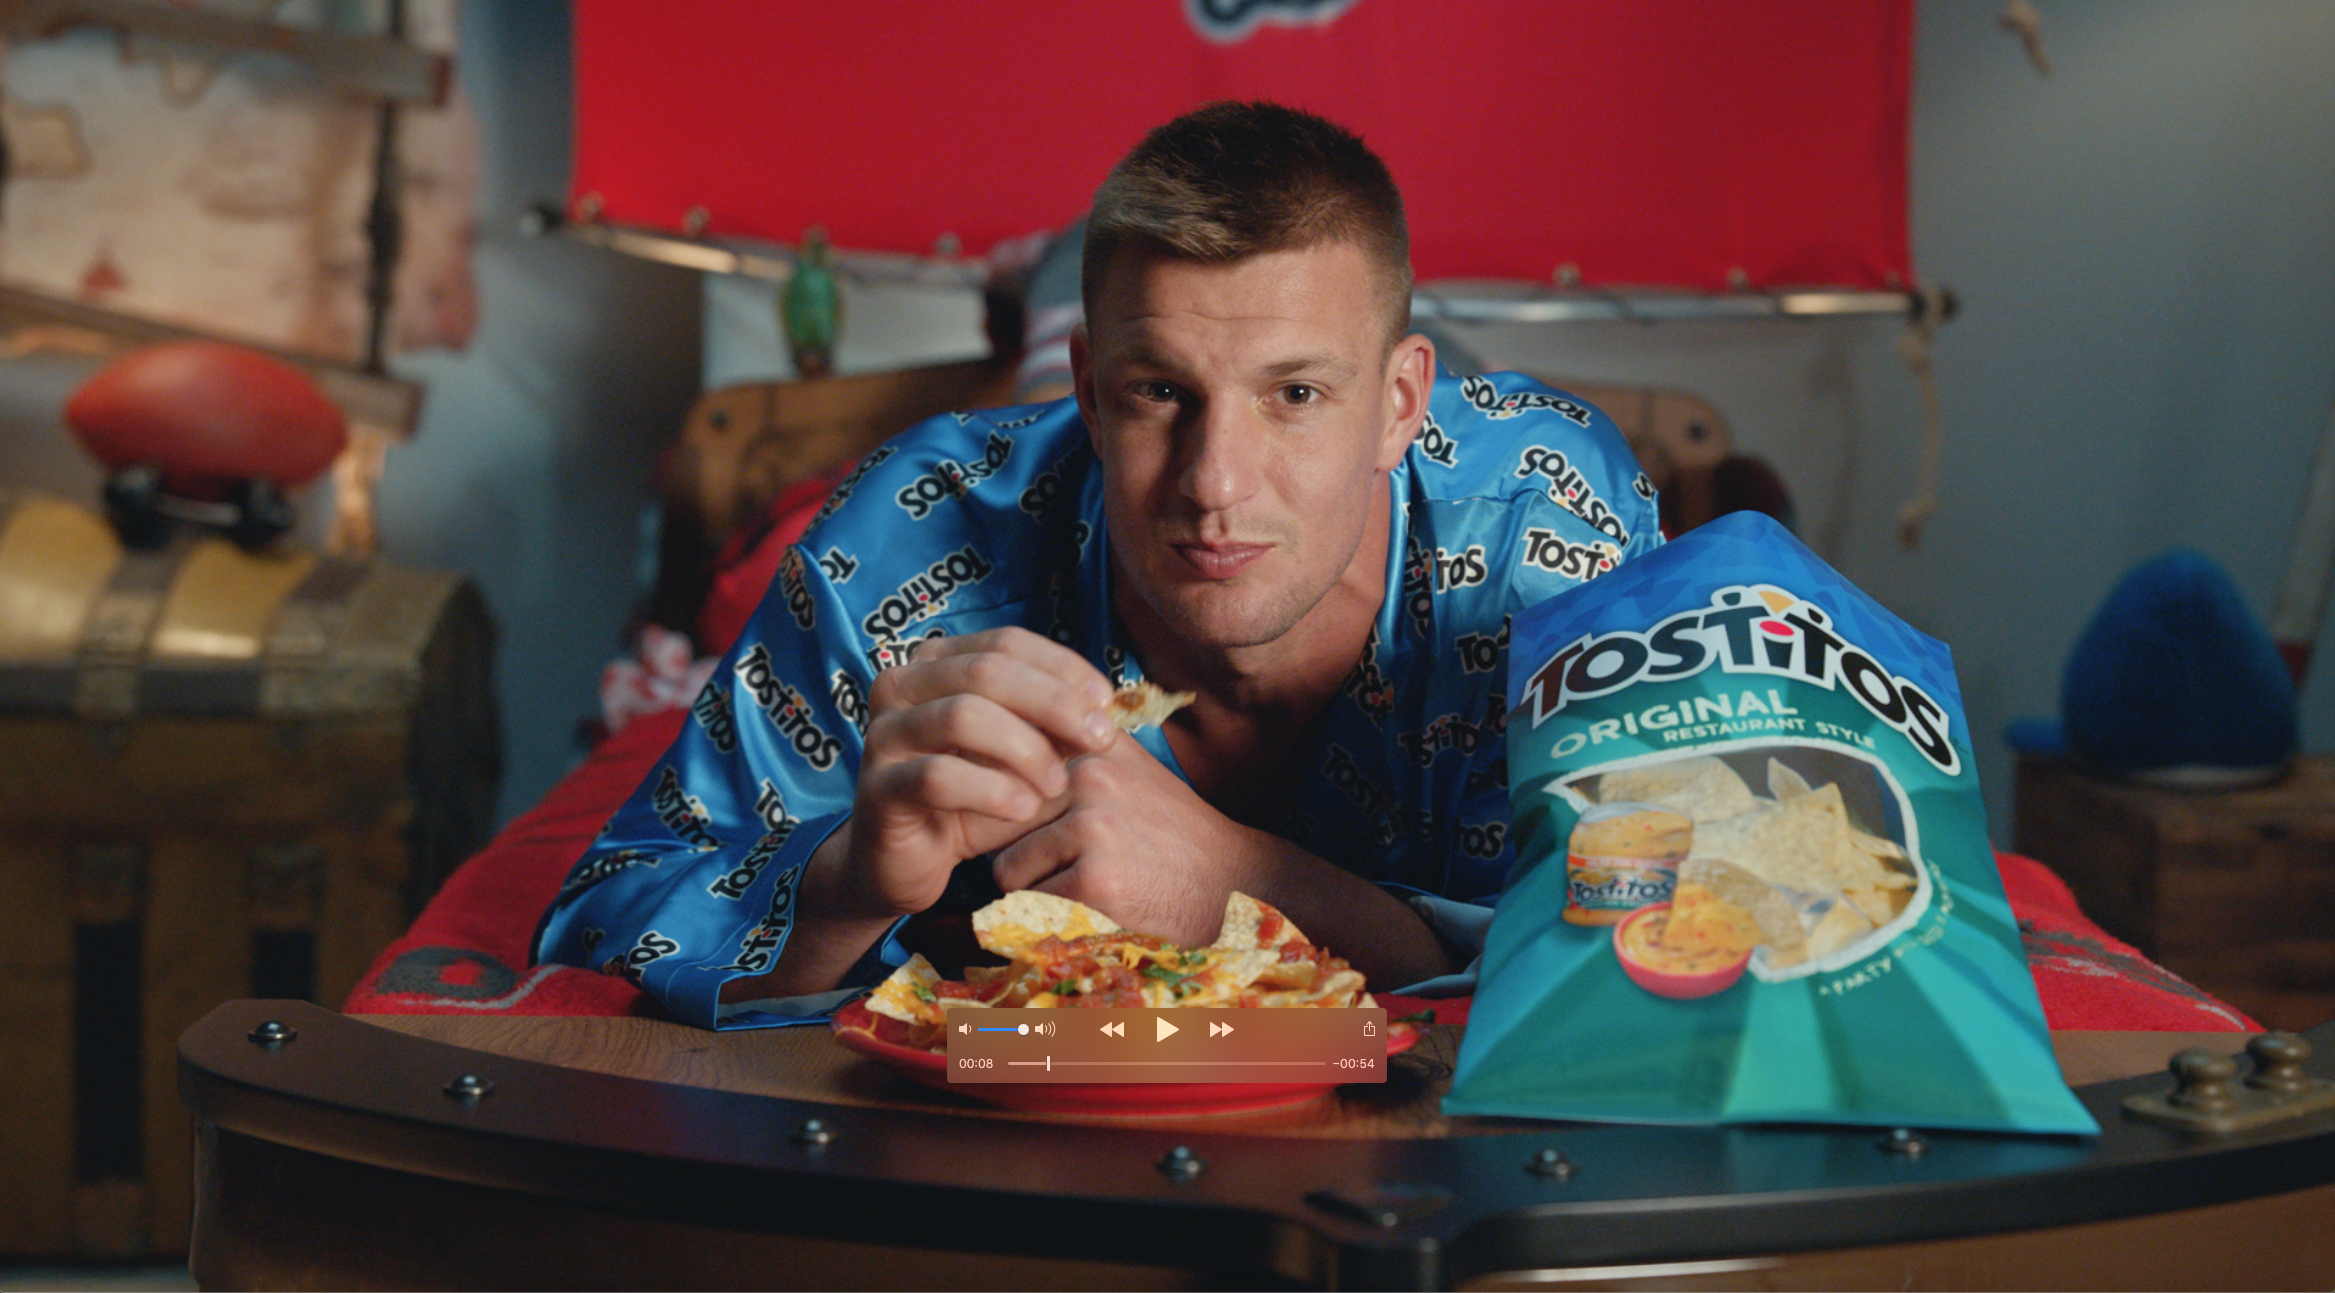 Frito-Lay's new commercial features NFL pros and legends, including Tom Brady and Rob Gronkowski – both starring in their first commercial in a Tampa Bay uniform